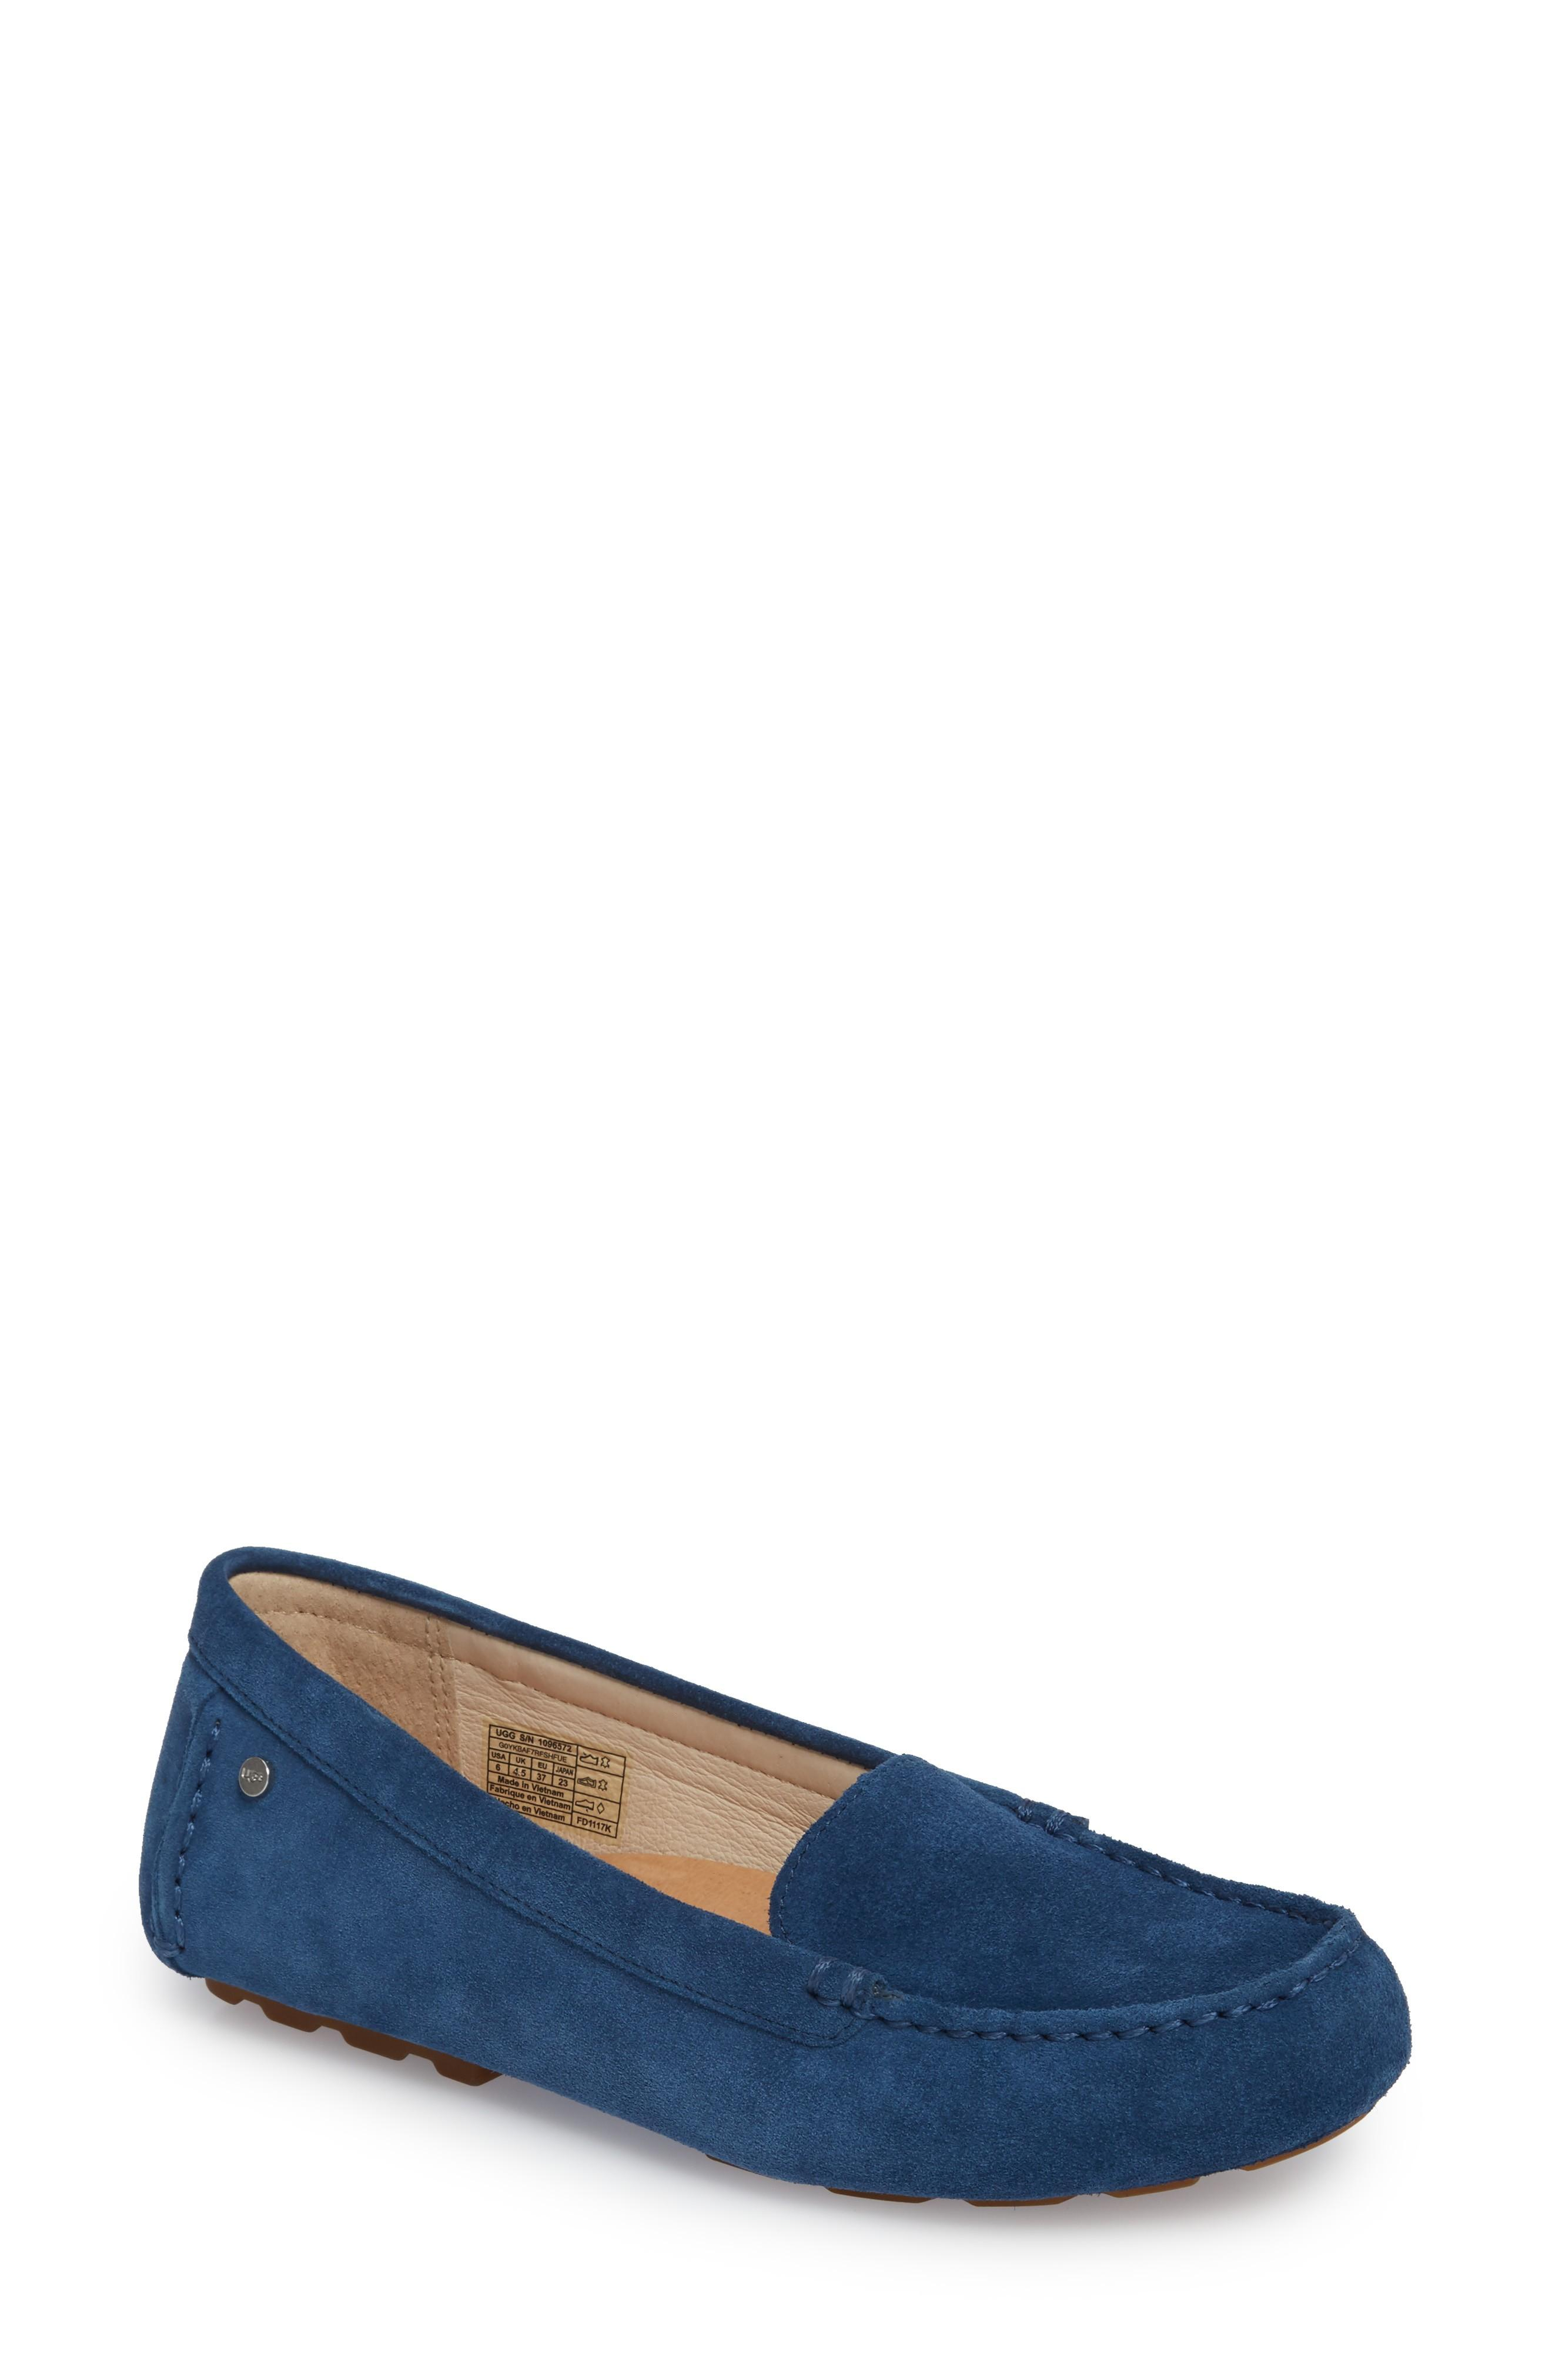 53cfe732660 Triple-layer foam cushioning in the Imprint by UGG footbed offers excellent  comfort in a flexible